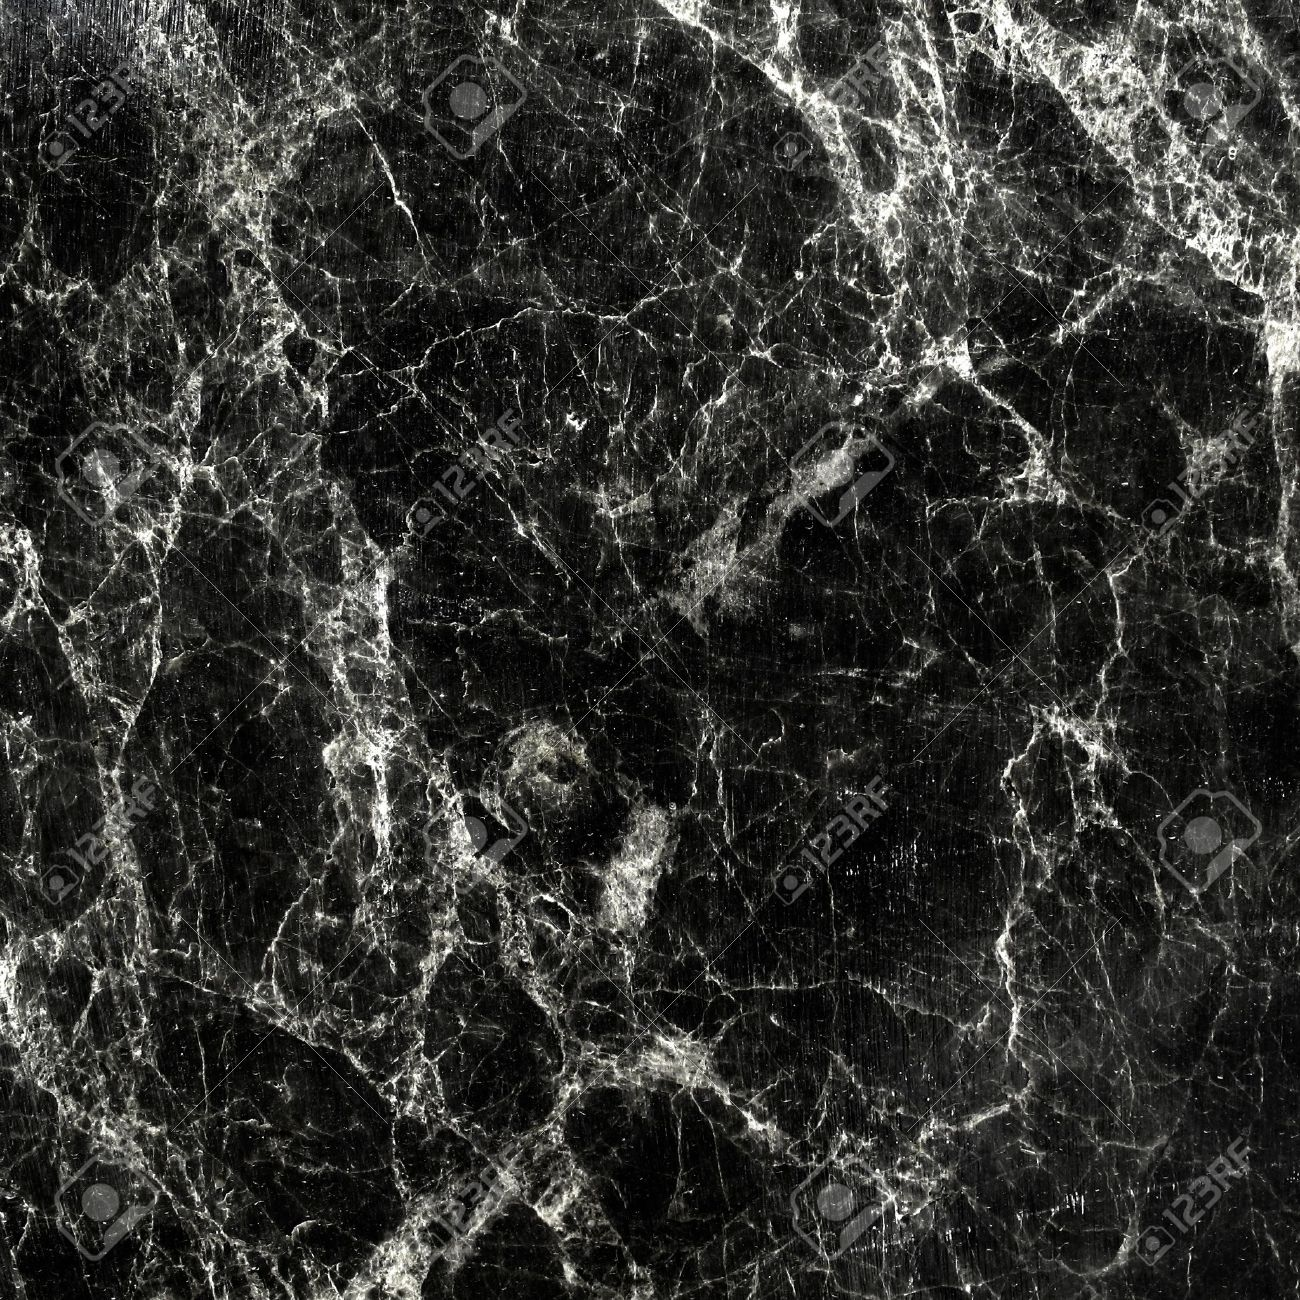 Black Marble Texture High Resolution Stock Photo Picture And Royalty Free Image Image 9225503